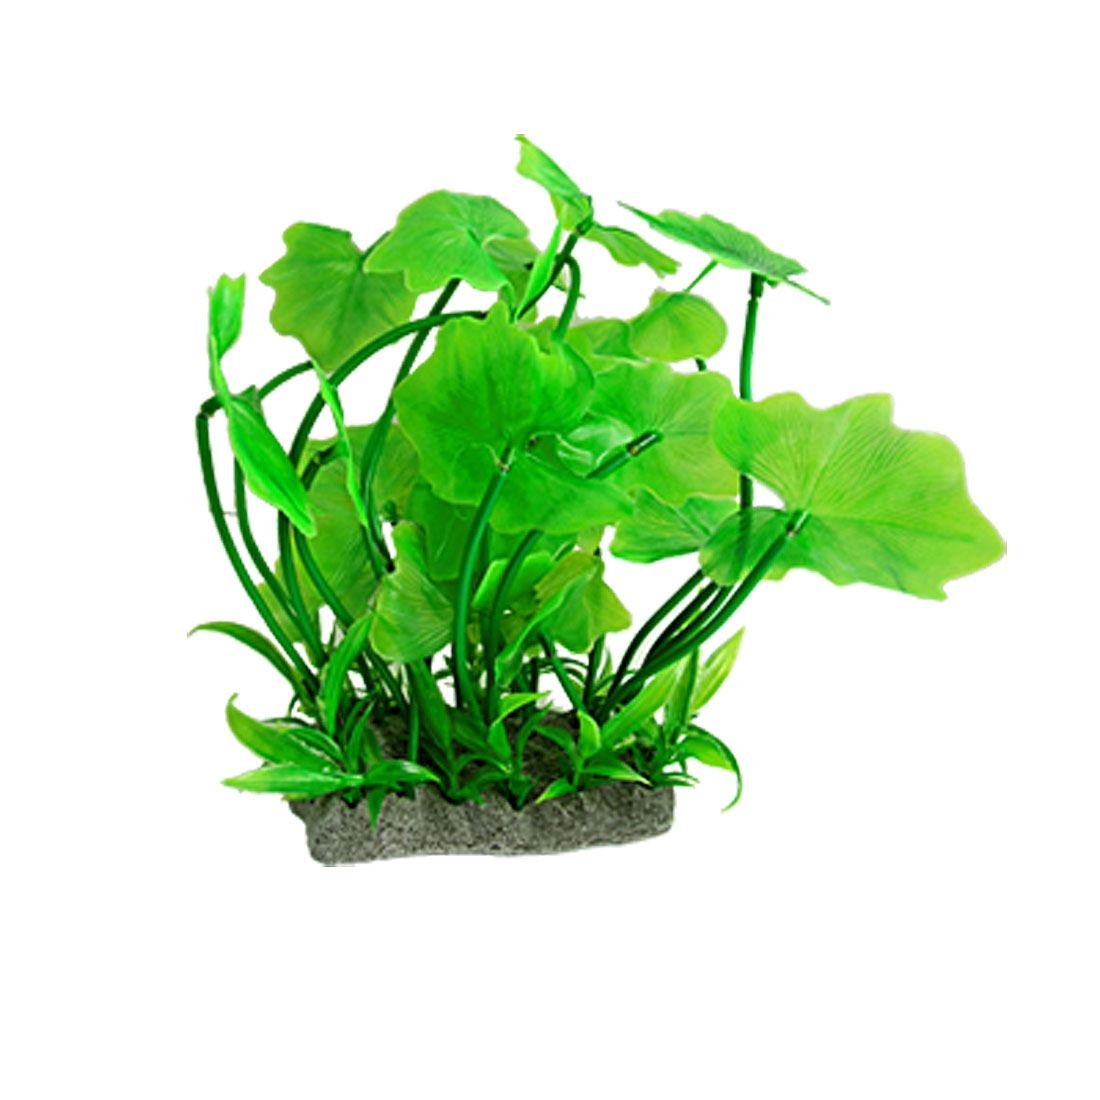 Aquarium Green Plastic Lobed Leaves Plant Cluster Ornament